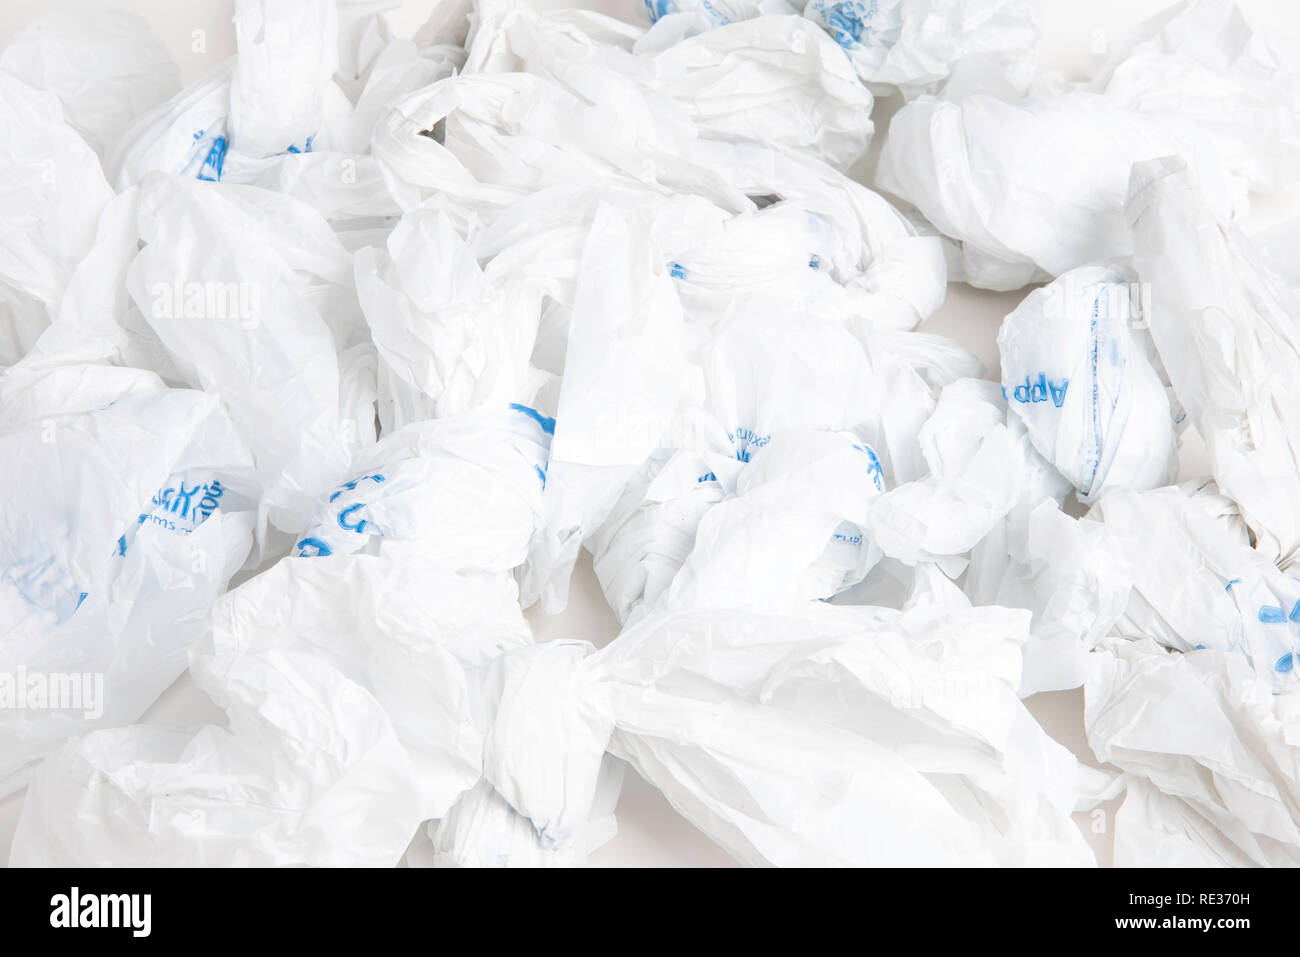 A bunch of crumpled white disposable plastic with blue prints. - Stock Image